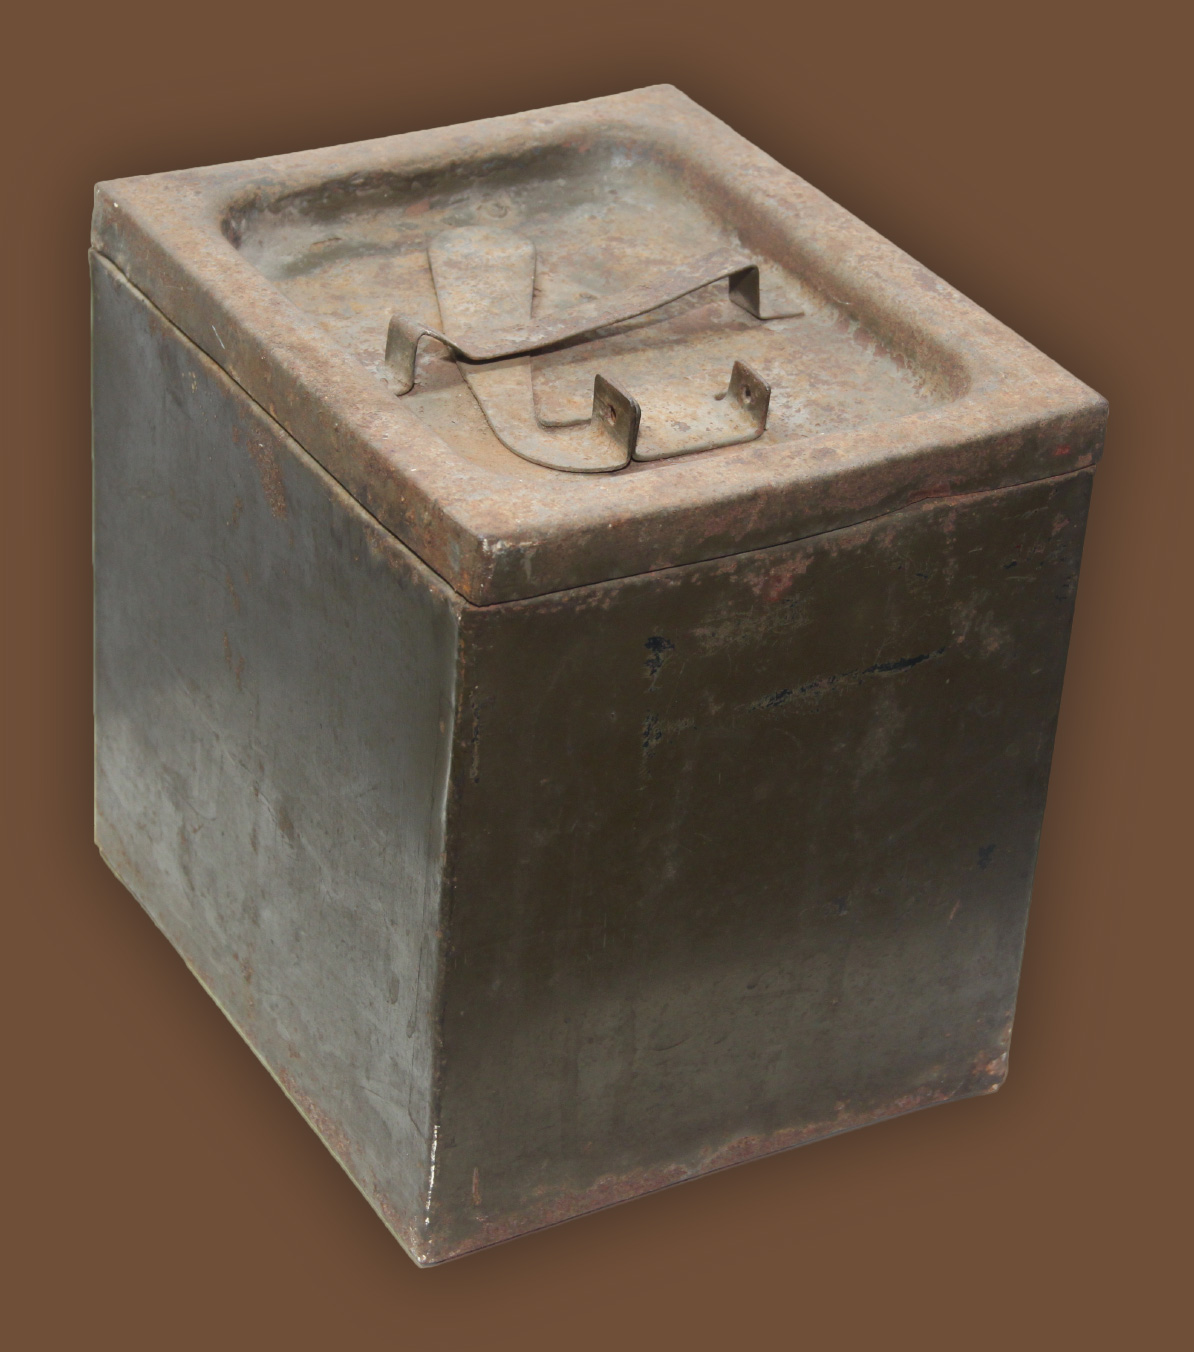 Ballot boxes for free India's first elections